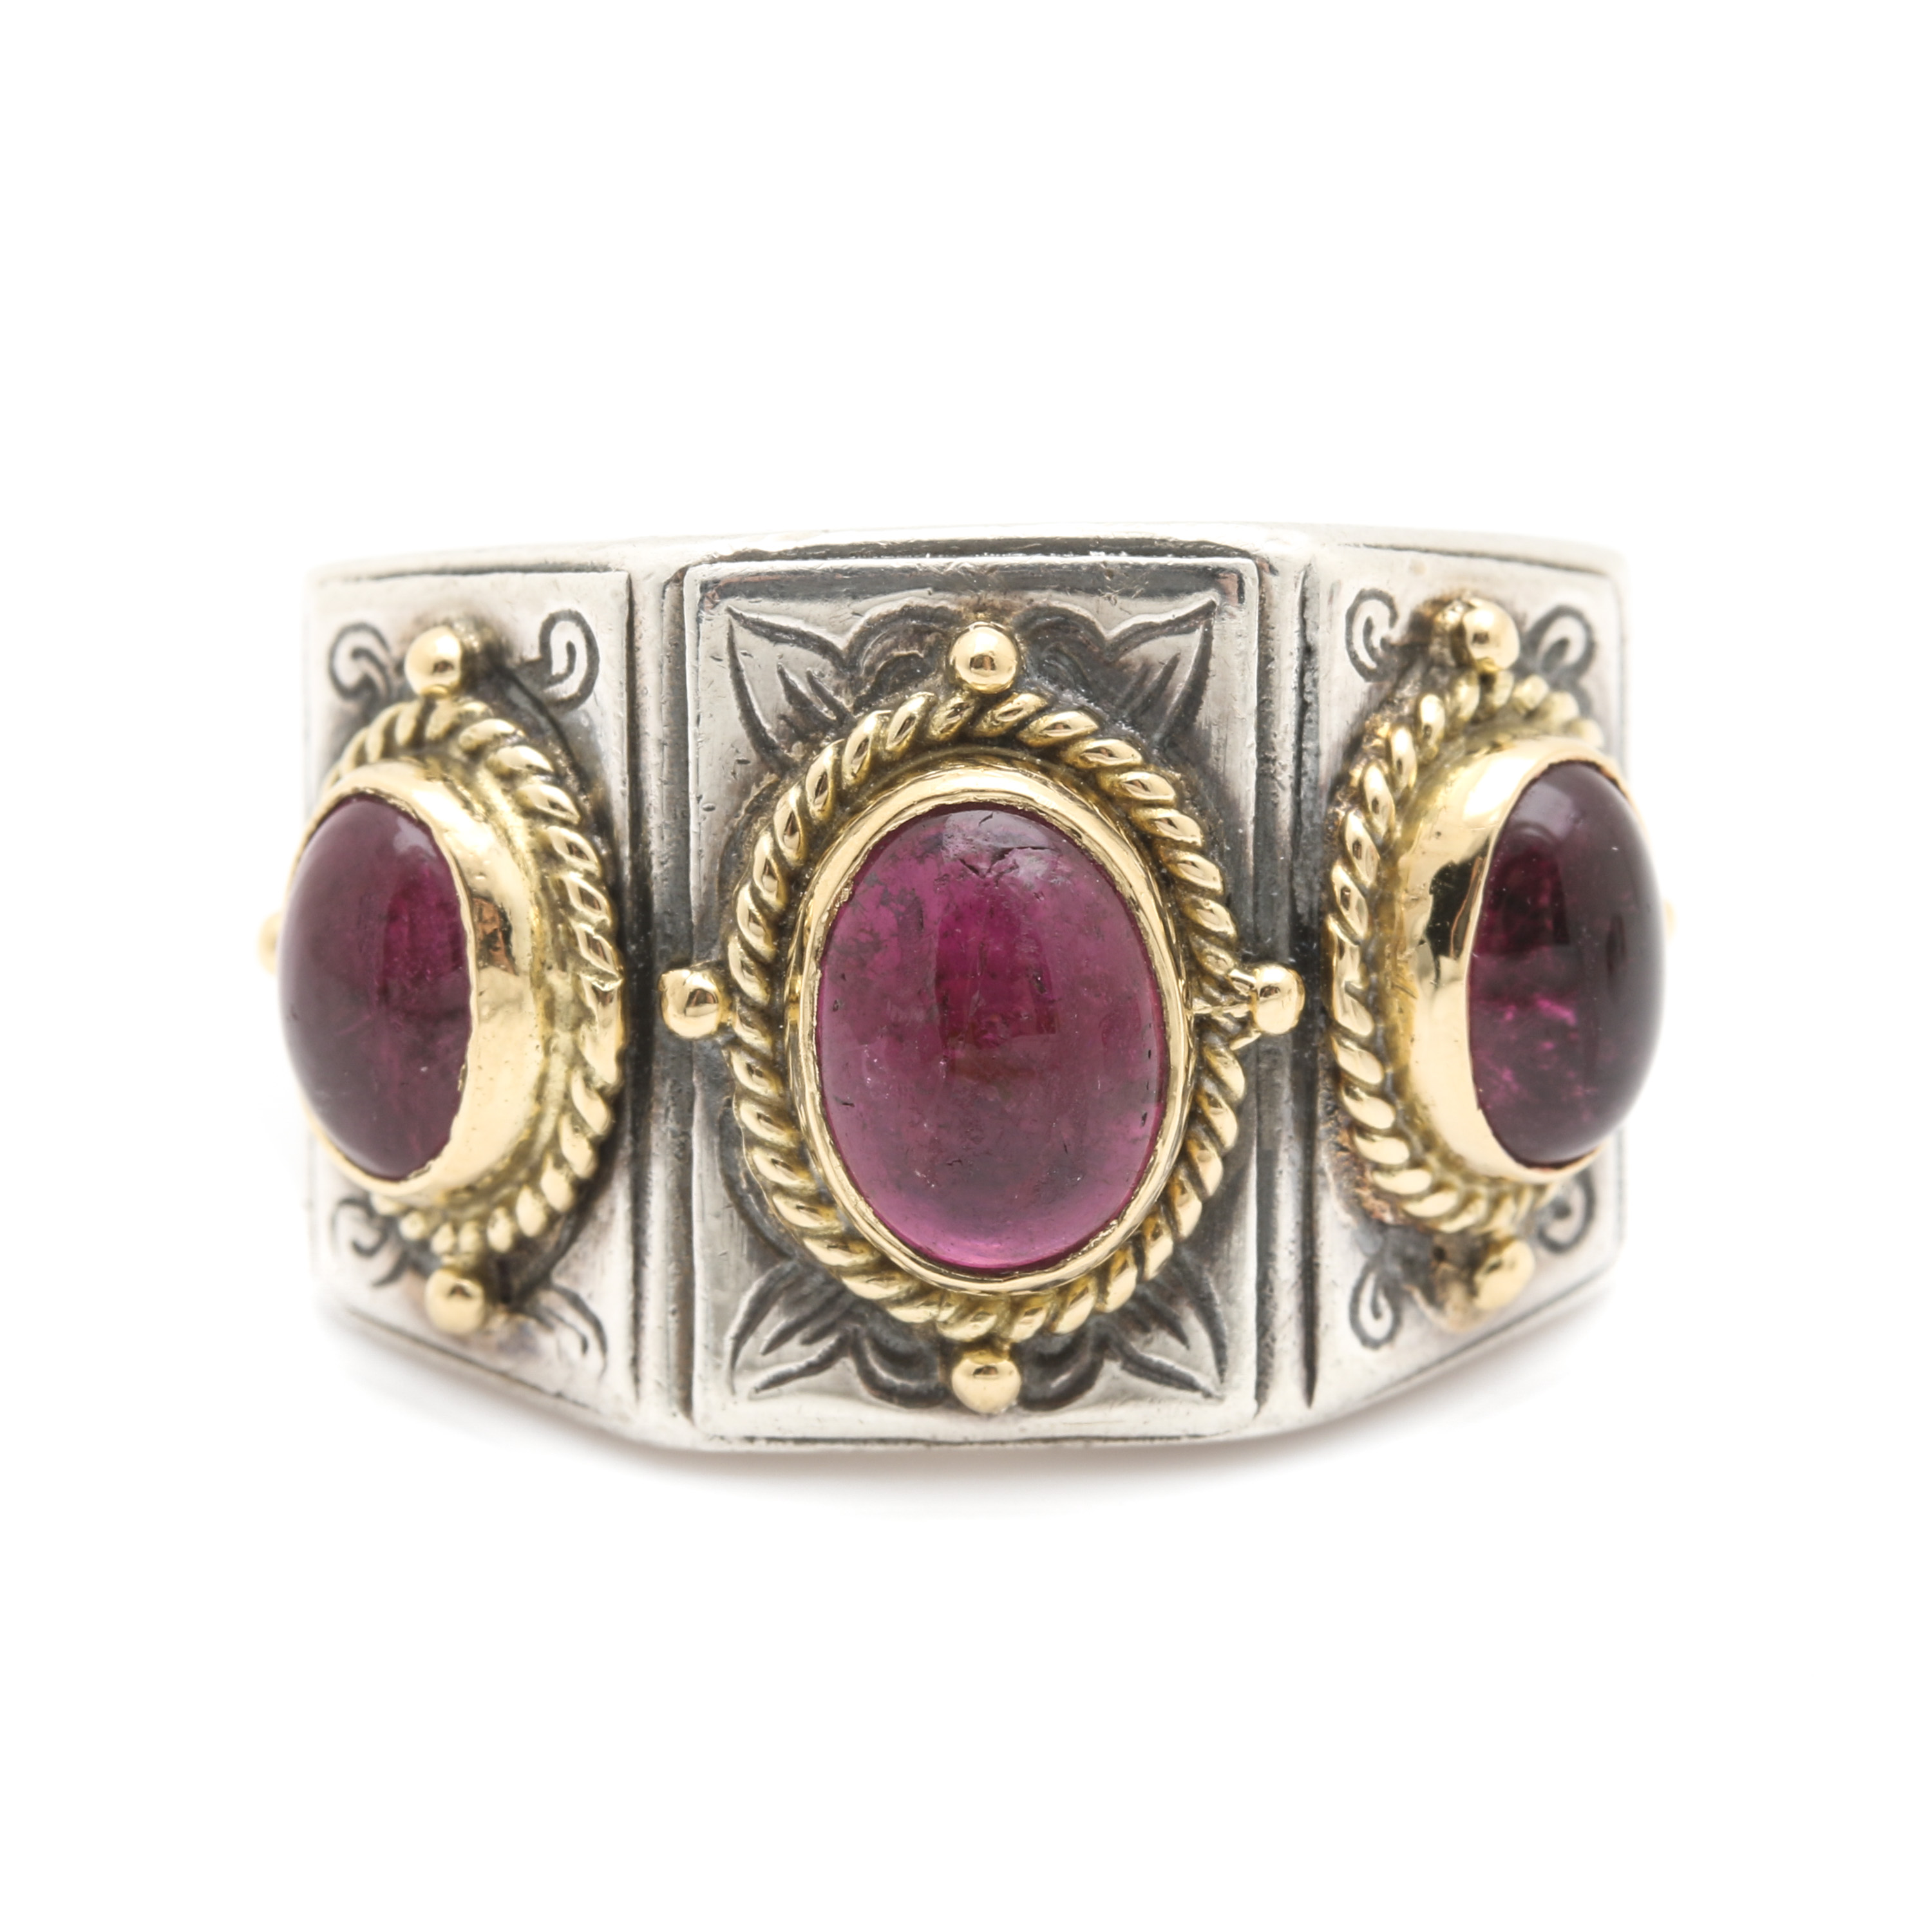 Konstantino 18k Yellow Gold Band Ring w/ Pink Sapphires e8hSOgHe